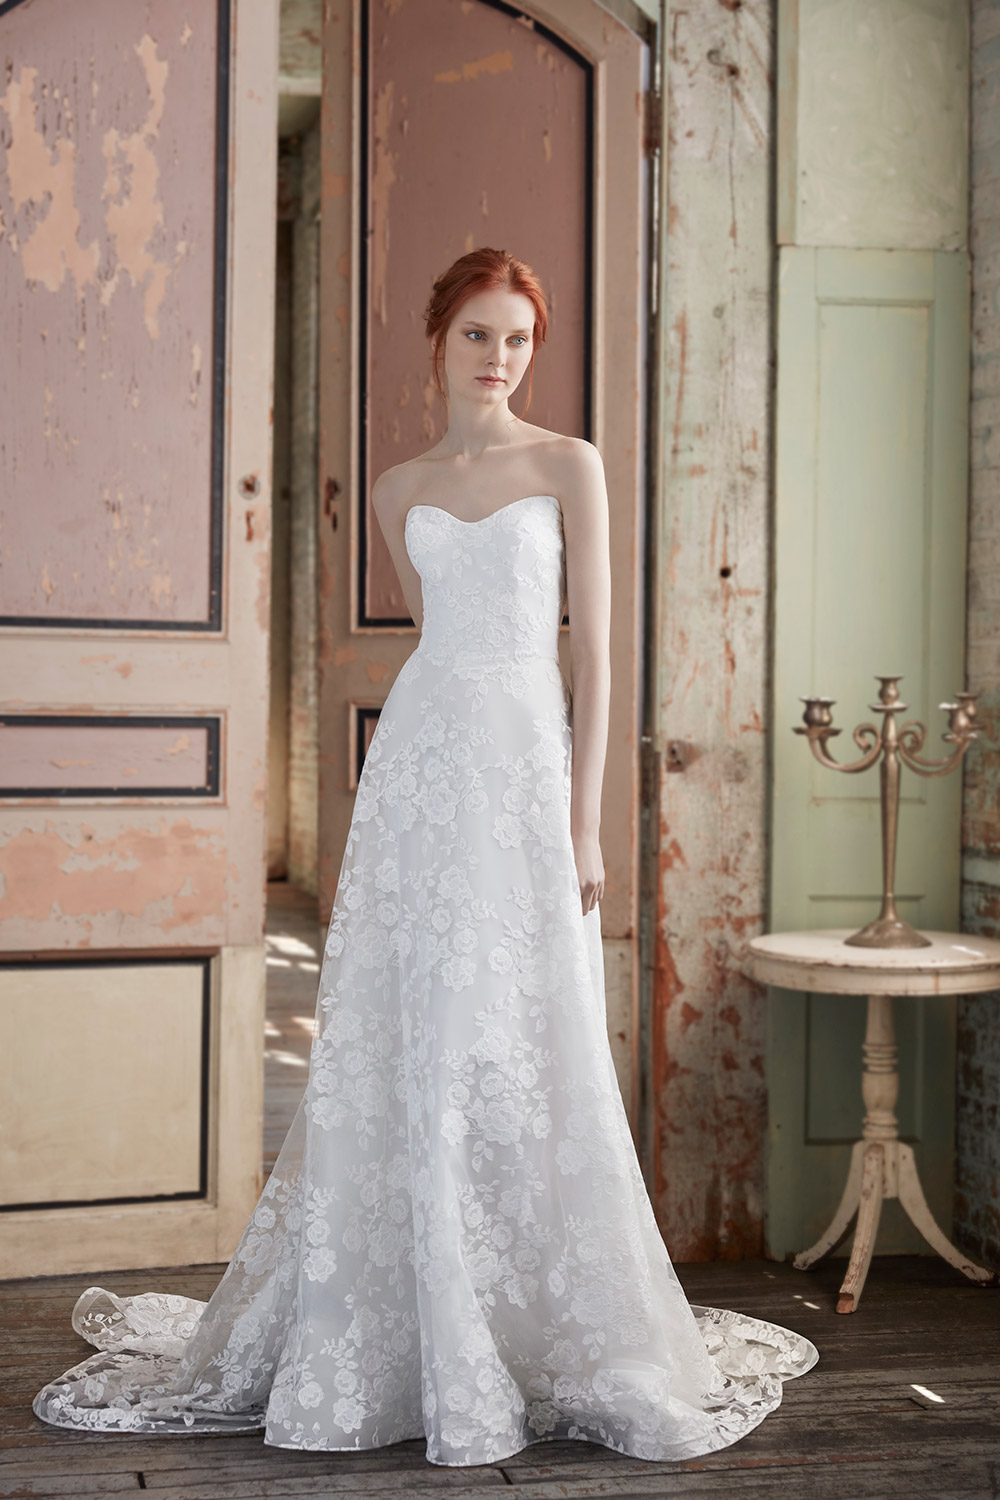 Paulette - Sareh Nouri Fall 2020 Bridal Collection. www.theweddingnotebook.com